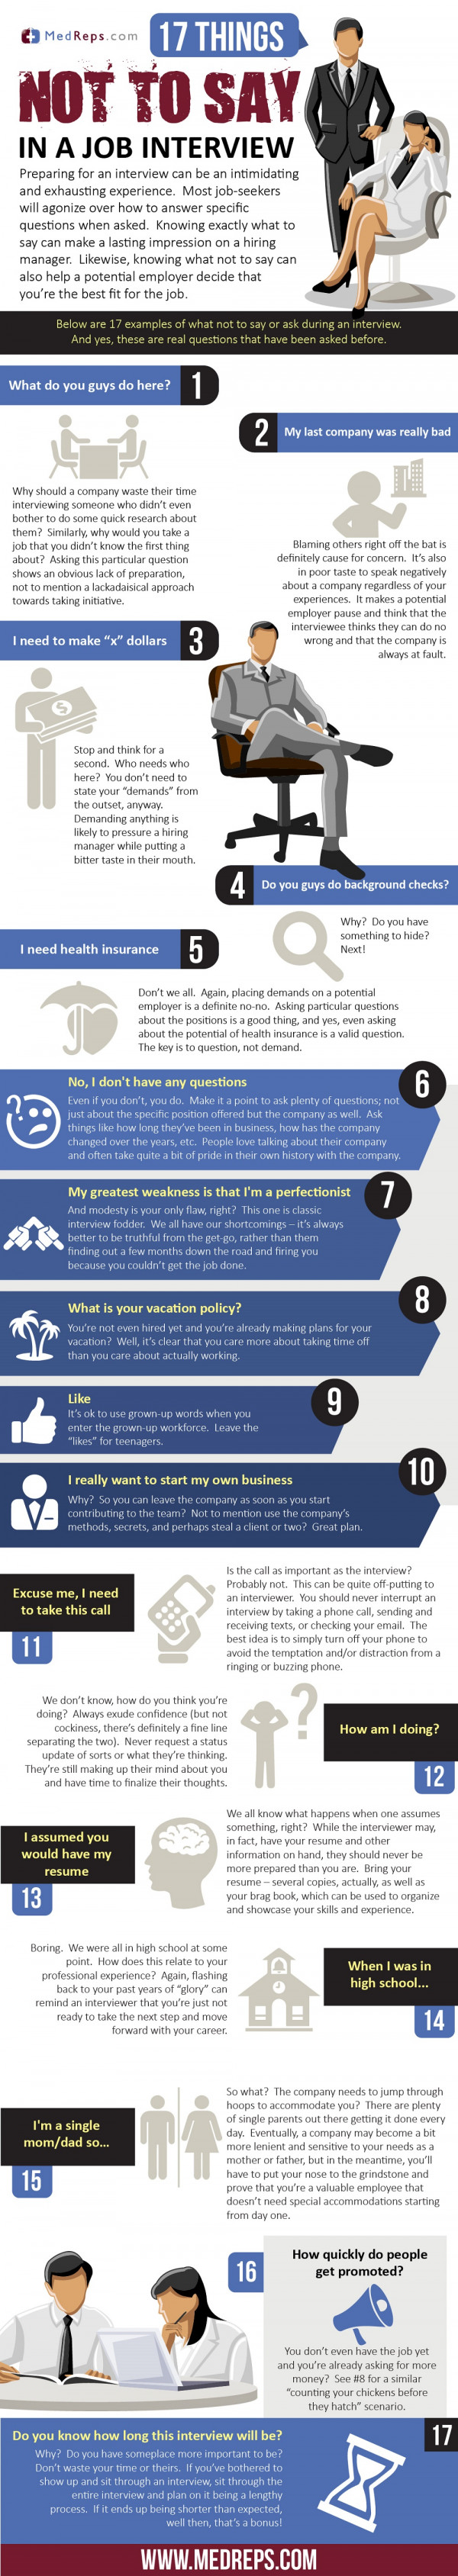 infographic 17 things not to say or ask in a job interview 17 things not to say in a job interview